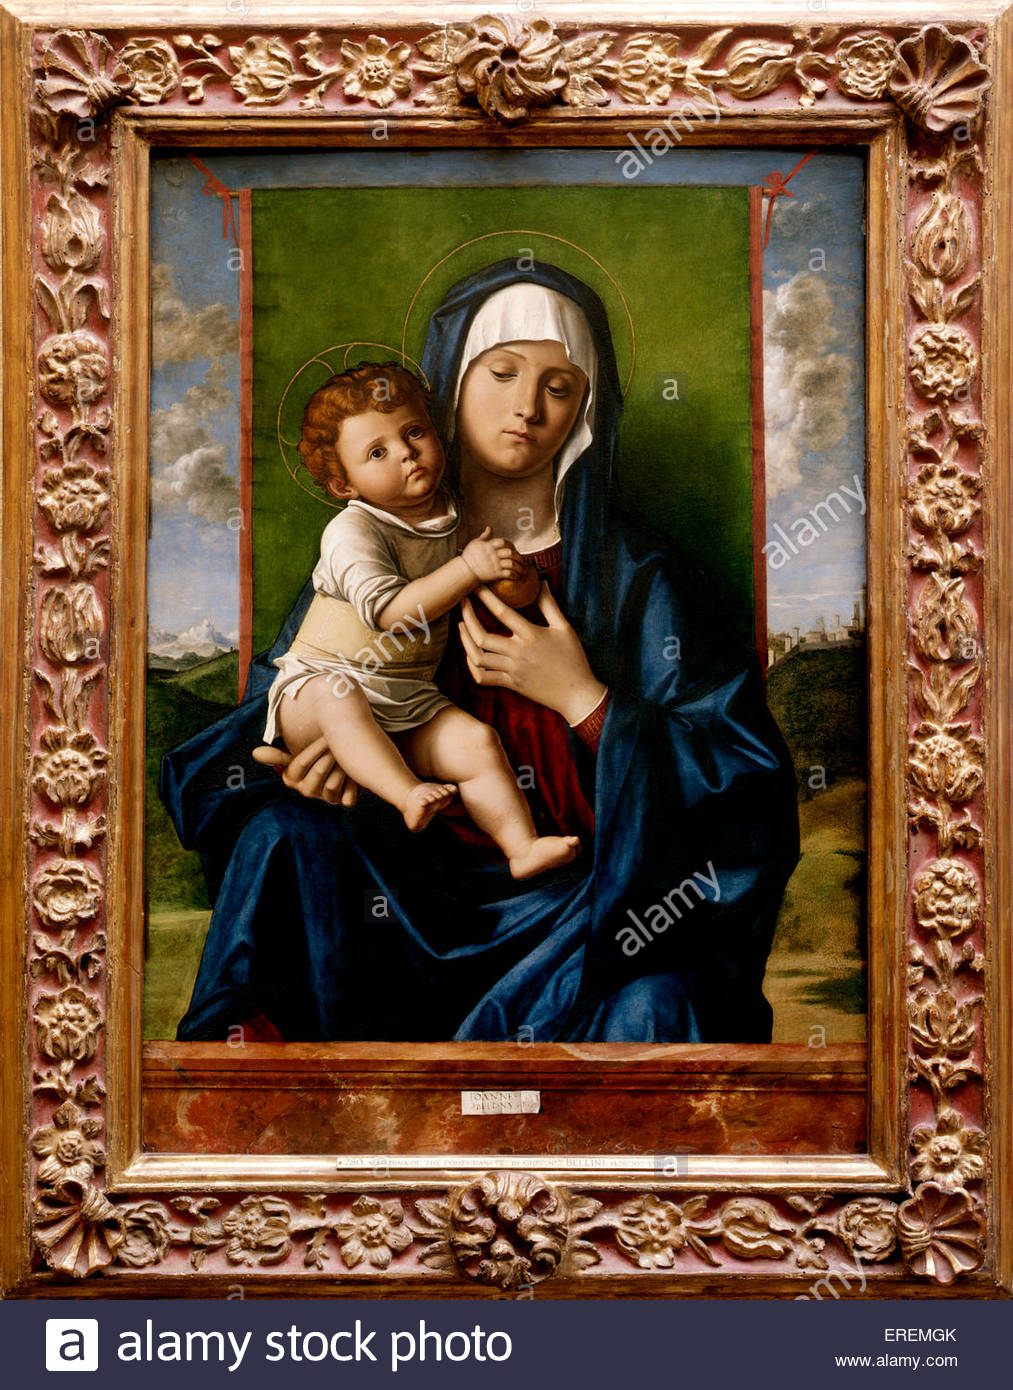 Virgin and Child by Giovanni Bellini, probably 1480-90. Also known as 'The Madonna of the Pomegranate'. - Stock Image